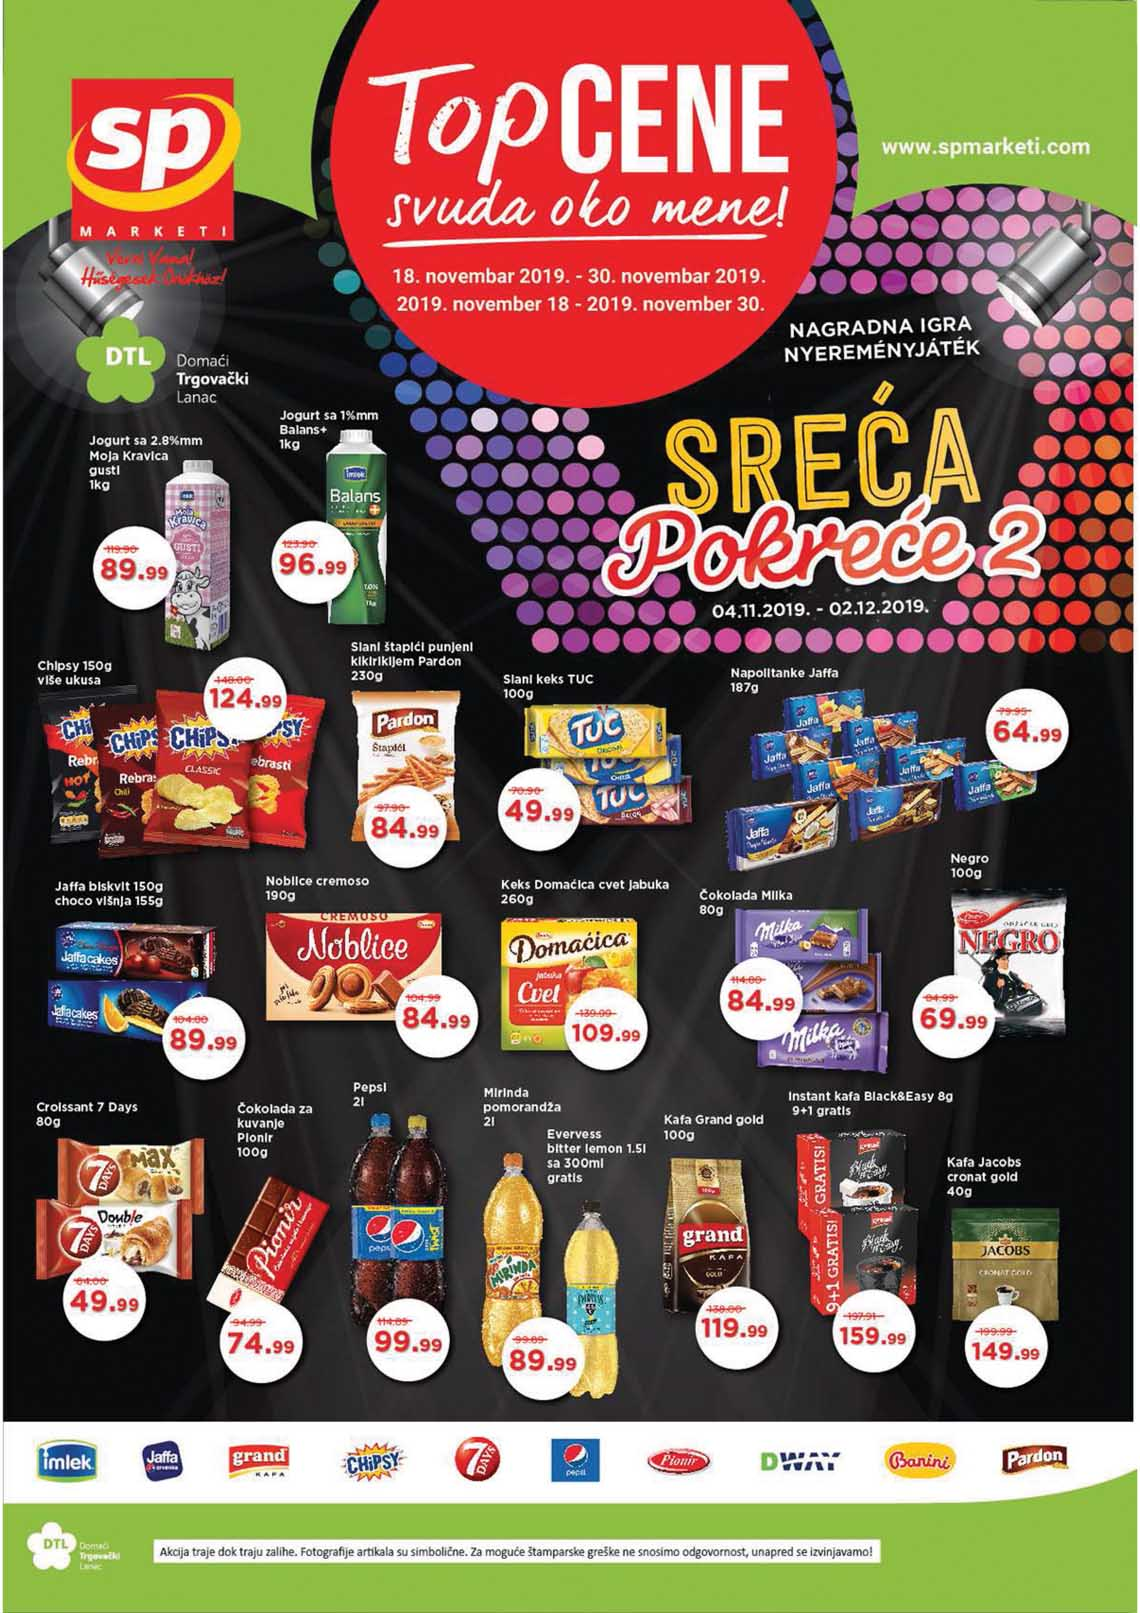 SP MARKETI KATALOG AKCIJA